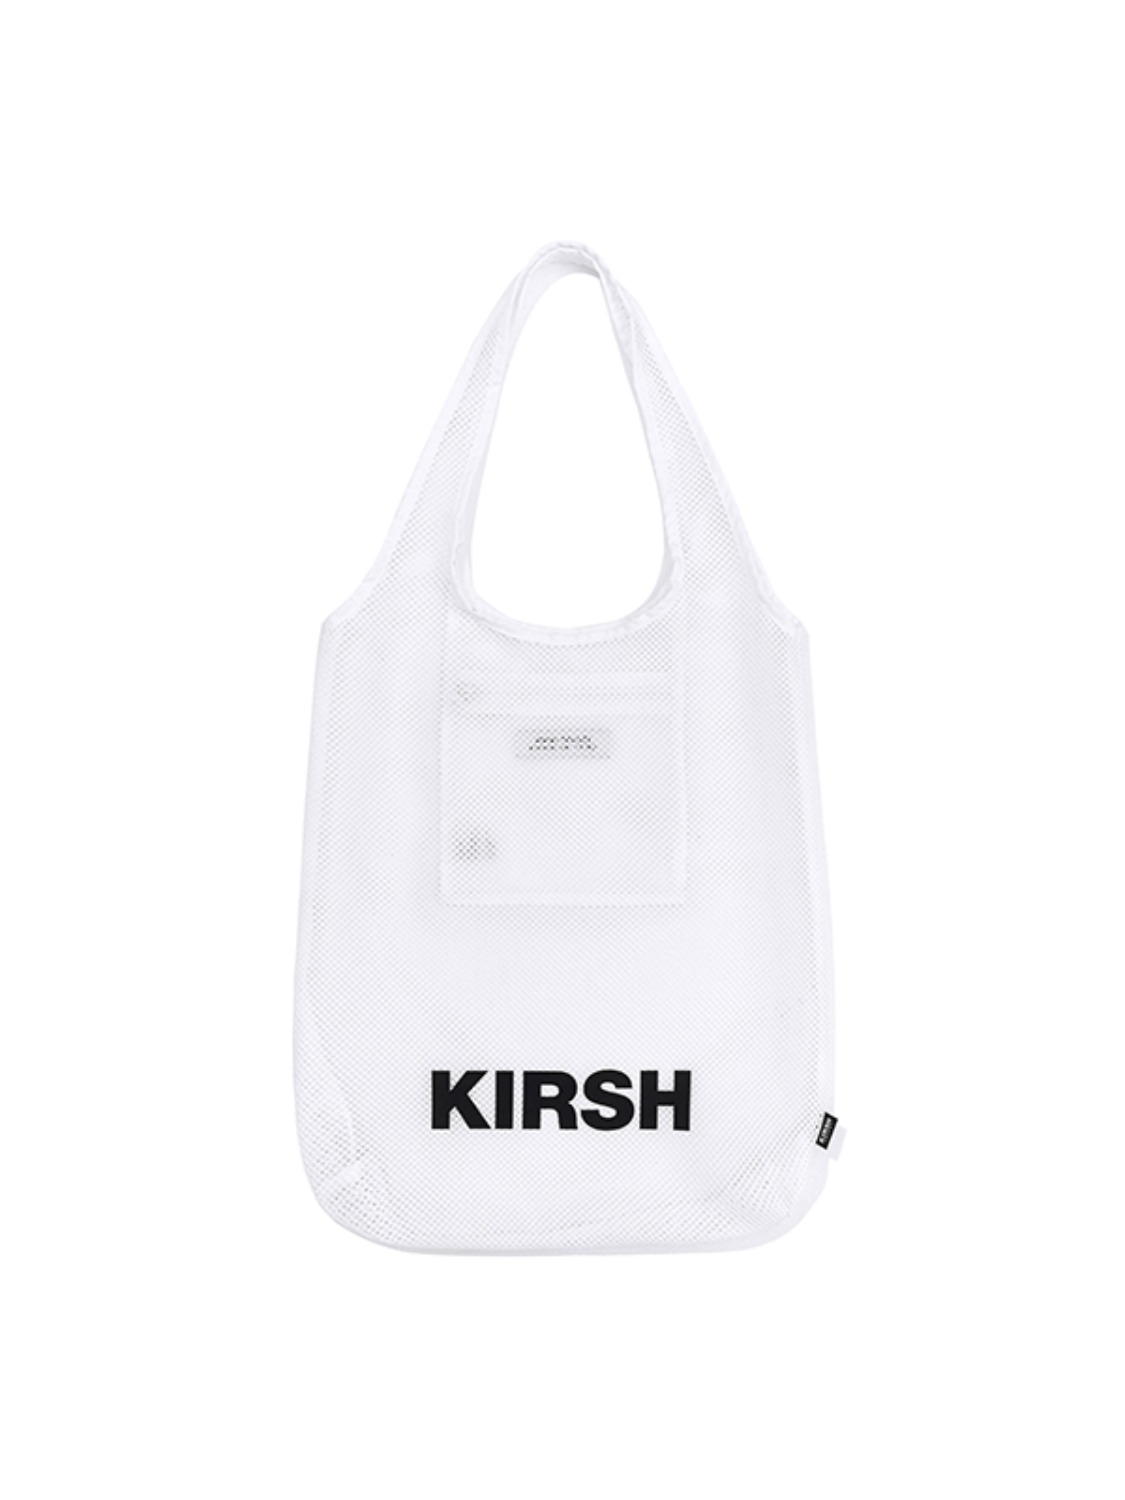 KIRSH POCKET BEACH MESH BAG JH [WHITE]